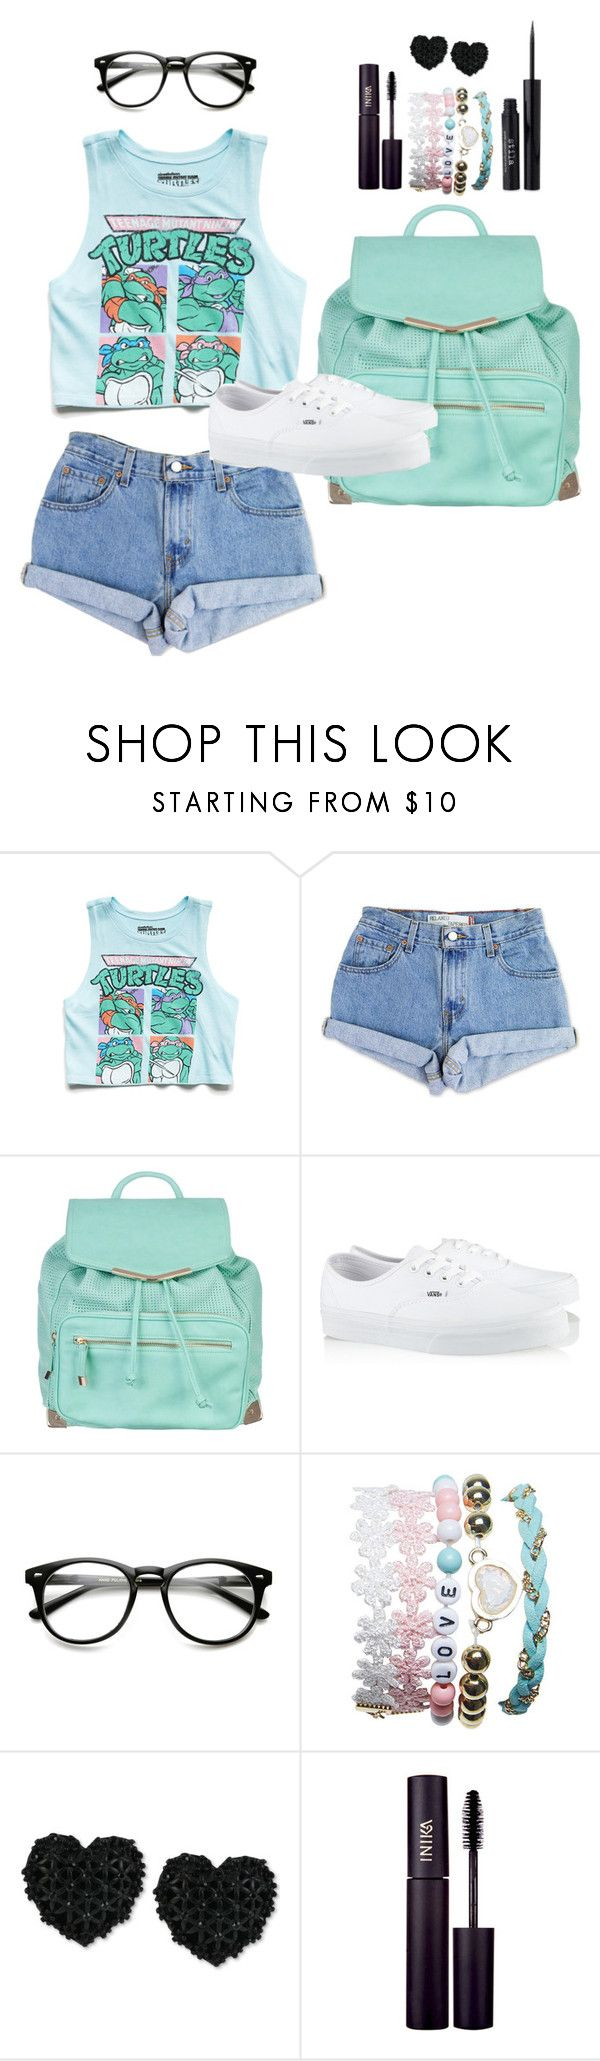 """I ♥ Mikey (T.M.N.T.)"" by missdianaleigh ❤ liked on Polyvore featuring Forever 21, Levi's, Atmos&Here, Vans, Wet Seal, Betsey Johnson, INIKA and Stila"